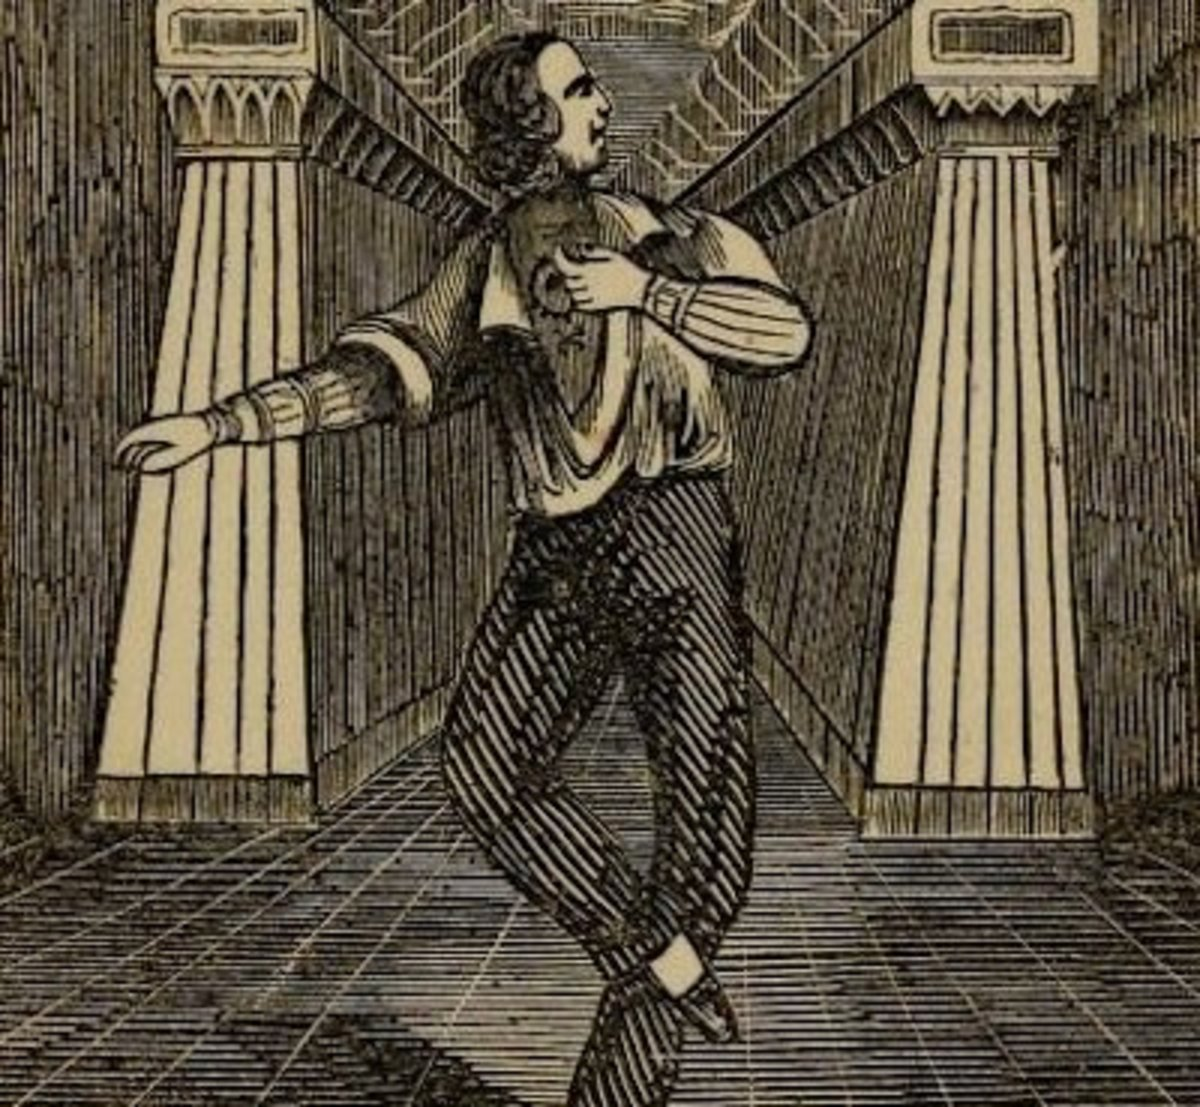 Image from James F. O'Connell's book, photo from Public Domain Review